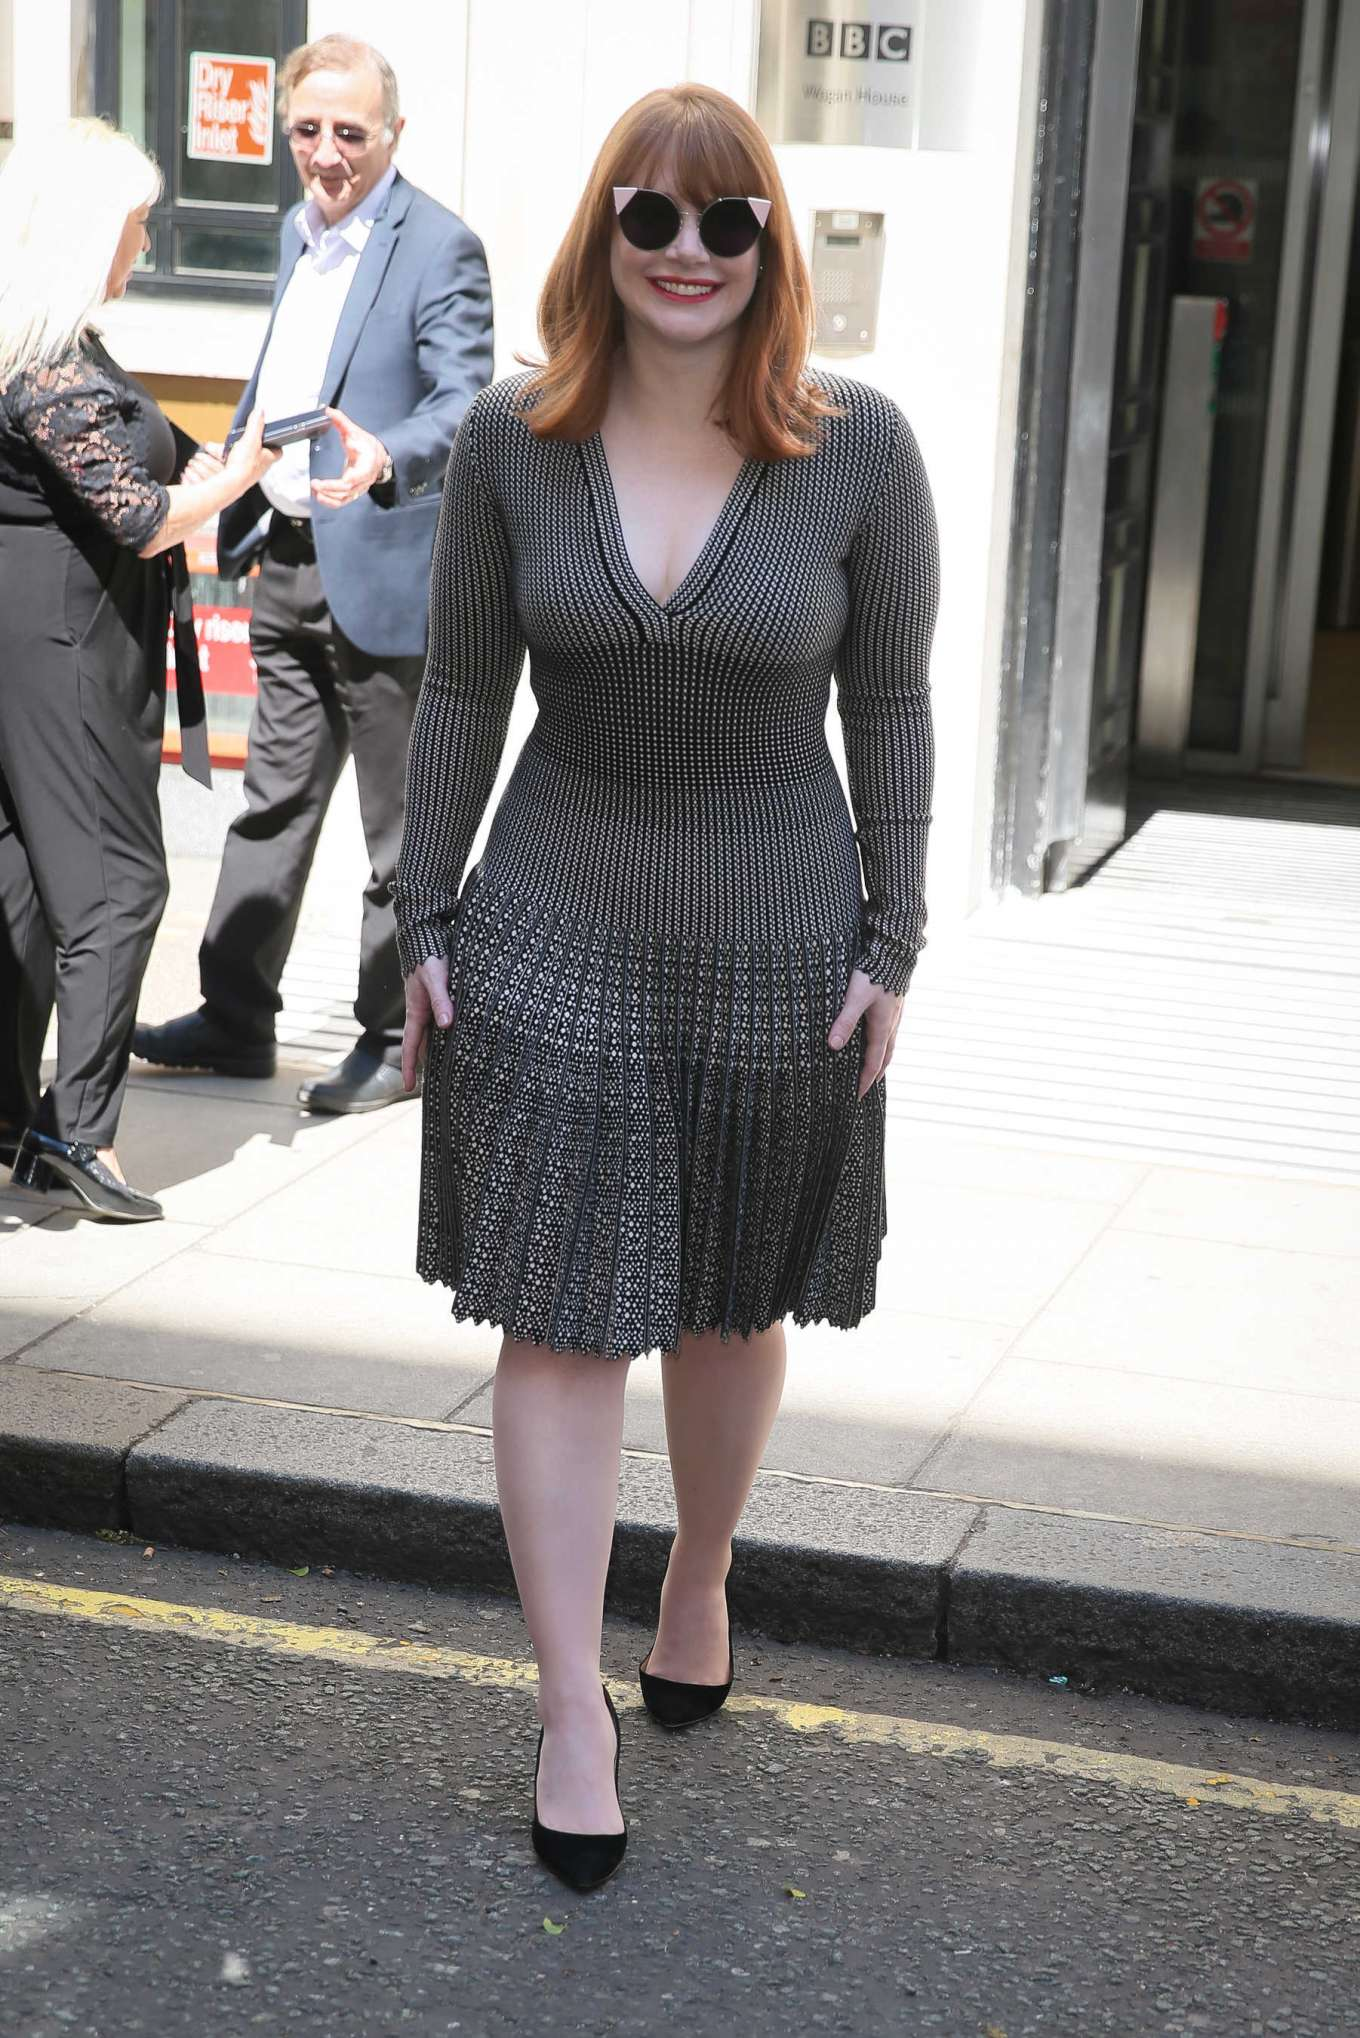 Bryce Dallas Howard 2019 : Bryce Dallas Howard: Out and about in London-17